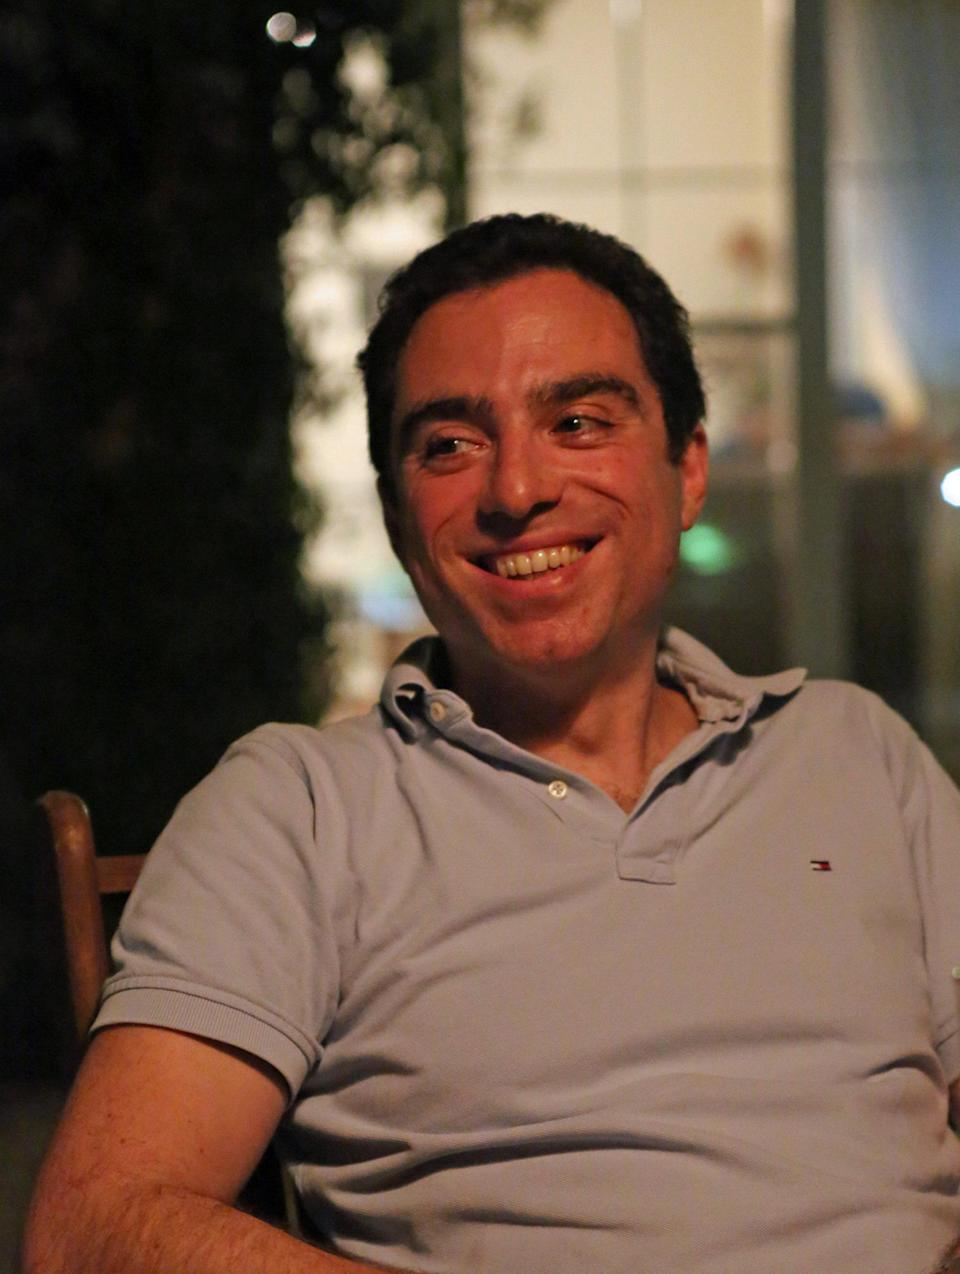 Siamak Namazi is shown in this handout photo May 18, 2012. Picture taken May 18, 2012. Handout via REUTERS ATTENTION EDITORS - THIS PICTURE WAS PROVIDED BY A THIRD PARTY. FOR EDITORIAL USE ONLY. NO RESALES. NO ARCHIVE.